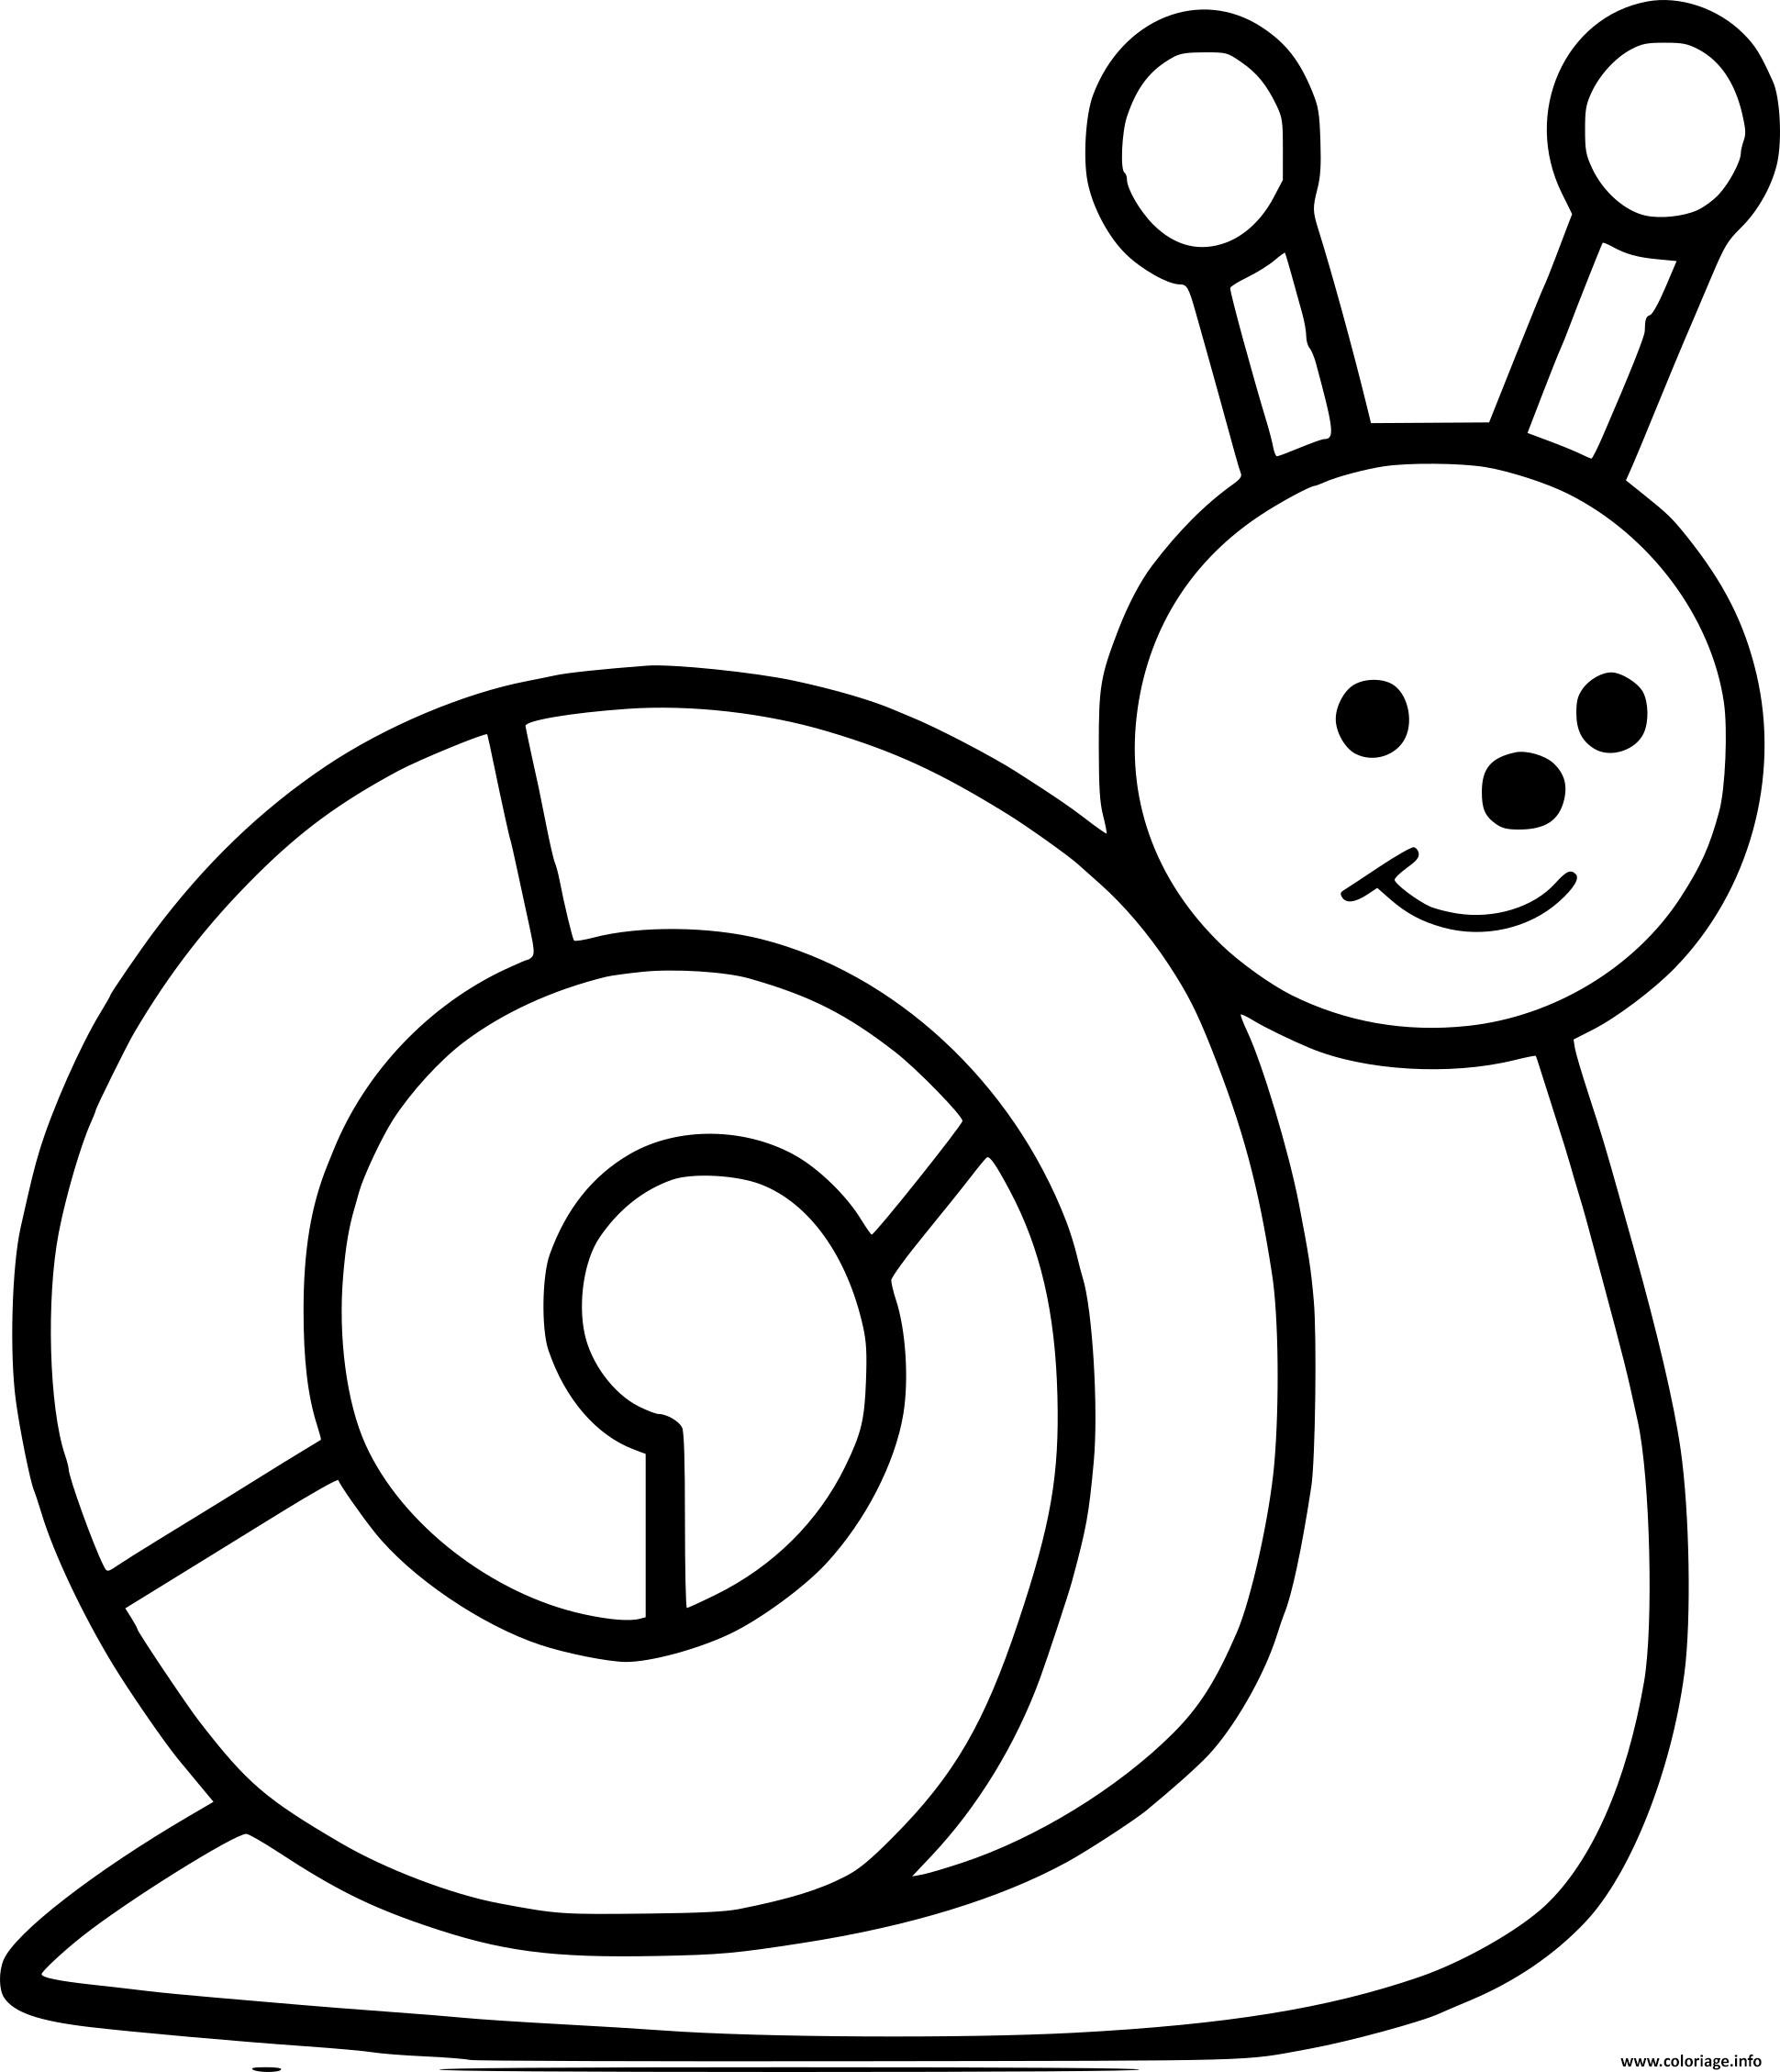 Coloriage escargot maternelle - Escargot dessin ...